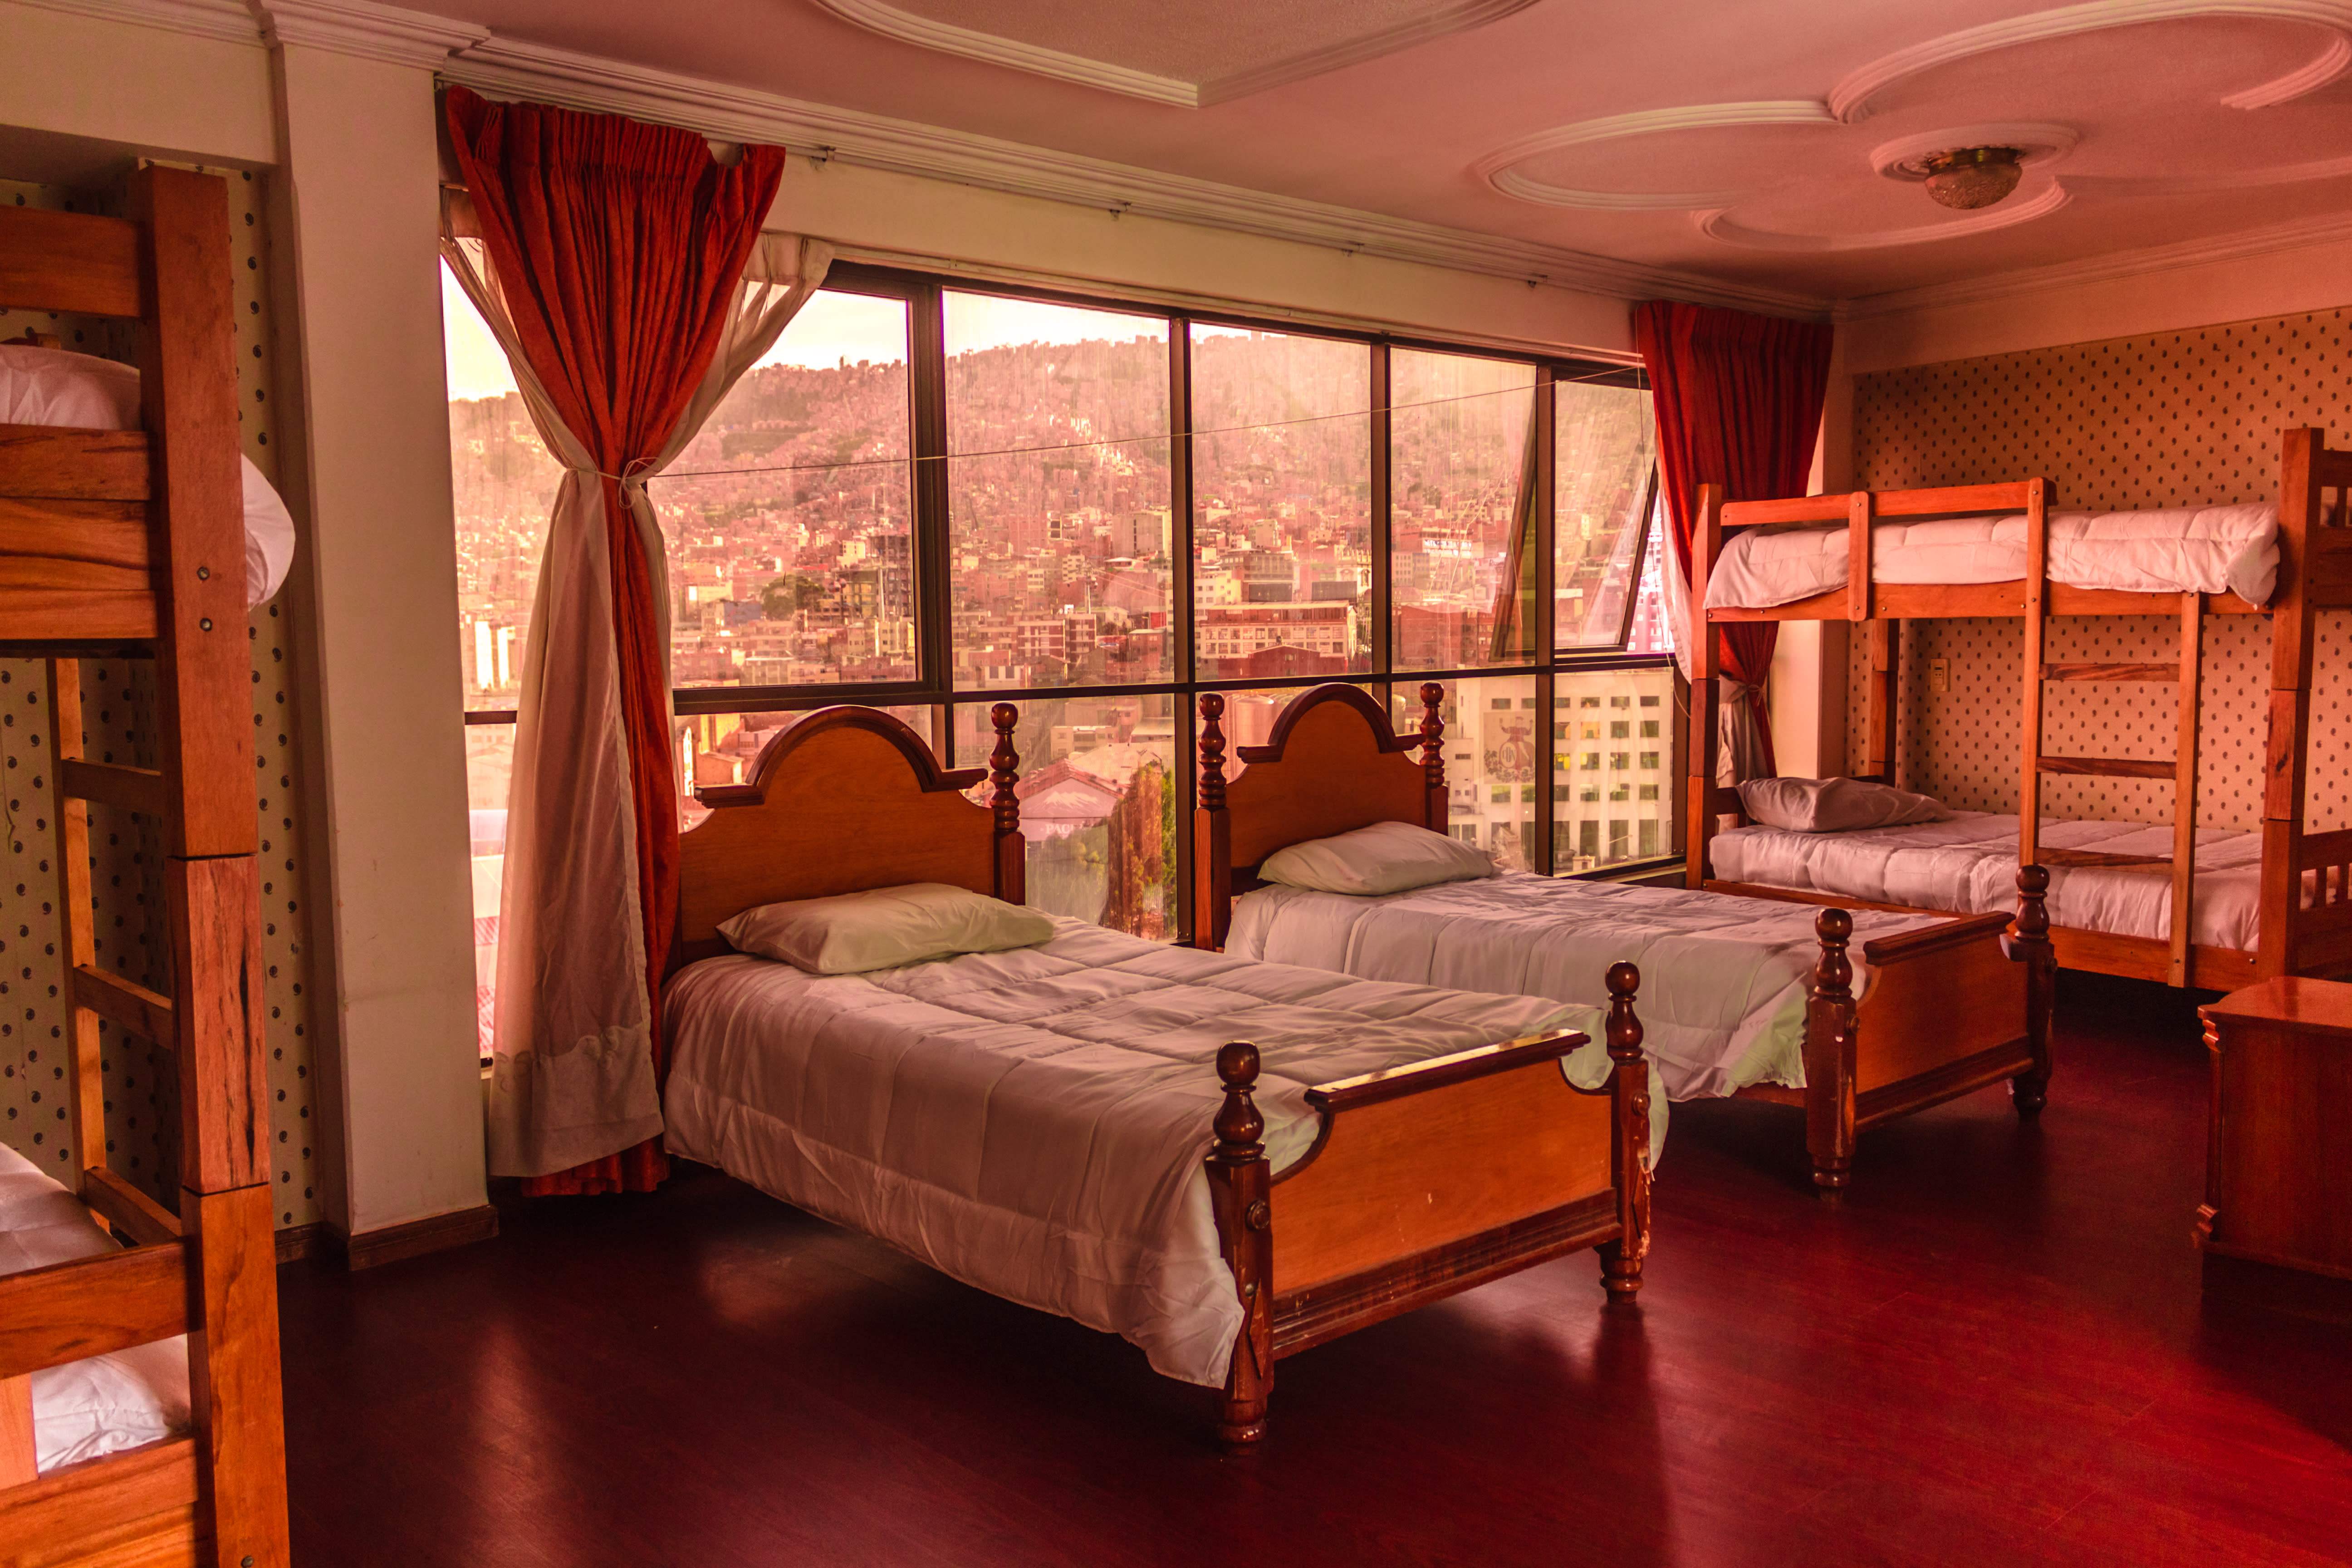 HOSTEL - The Rooftop Bolivia